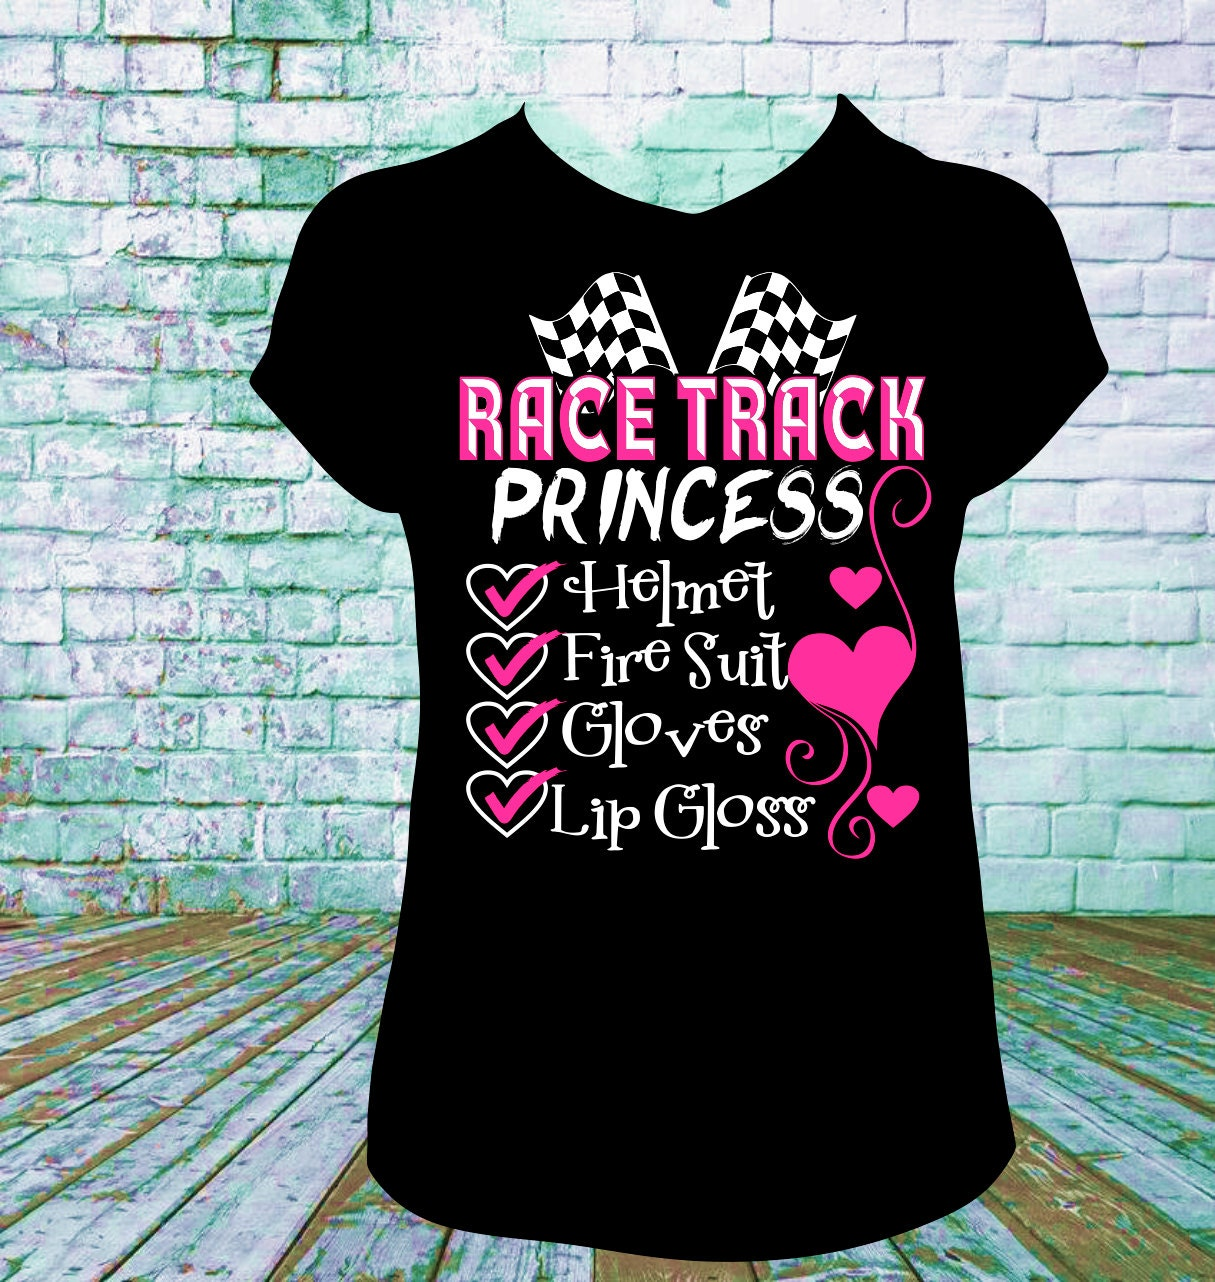 race track princess t shirt dirt track racing drag racing